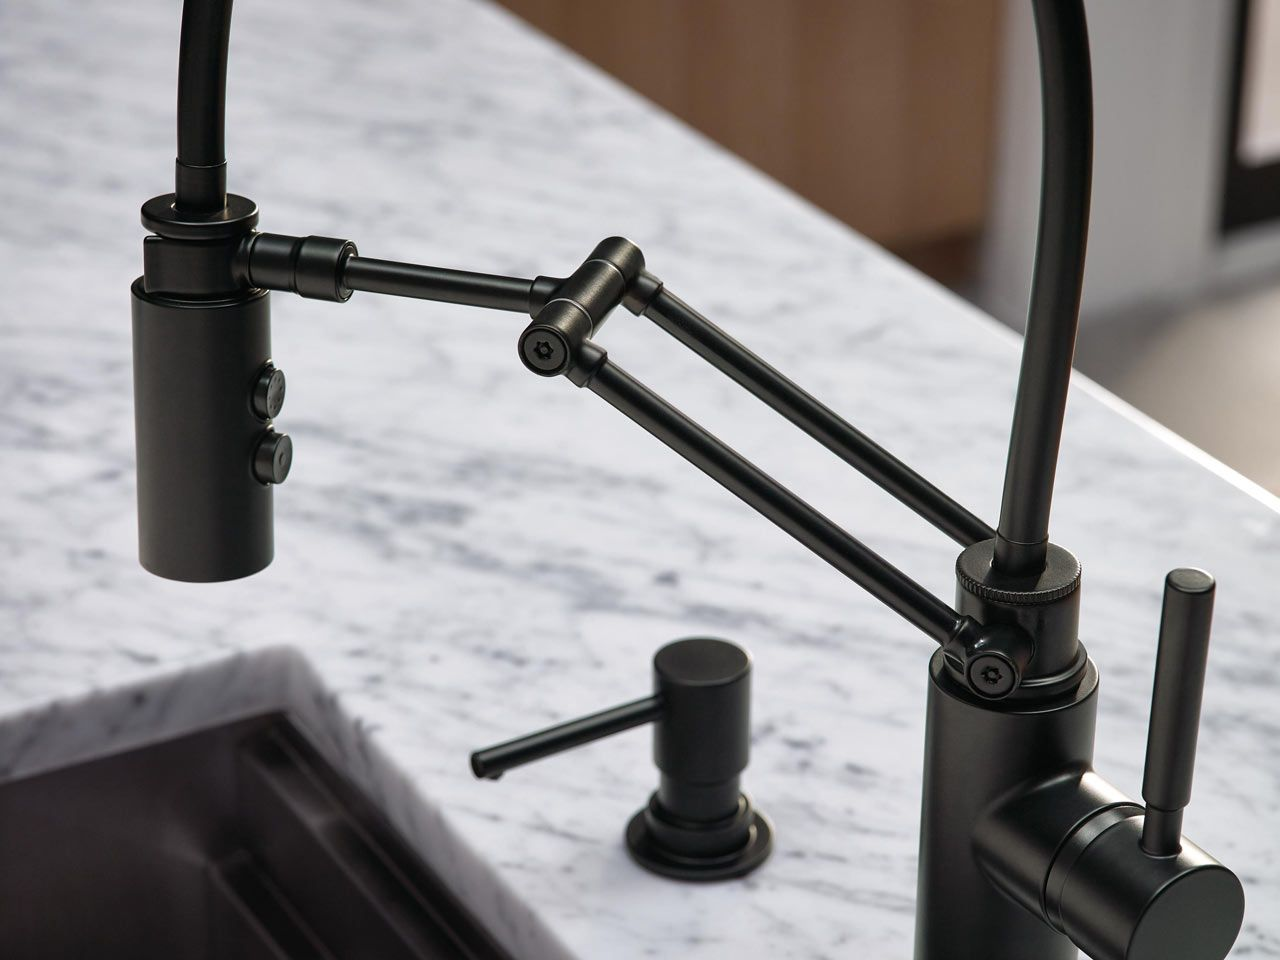 A kitchen faucet that works hard and looks good doing it design milk